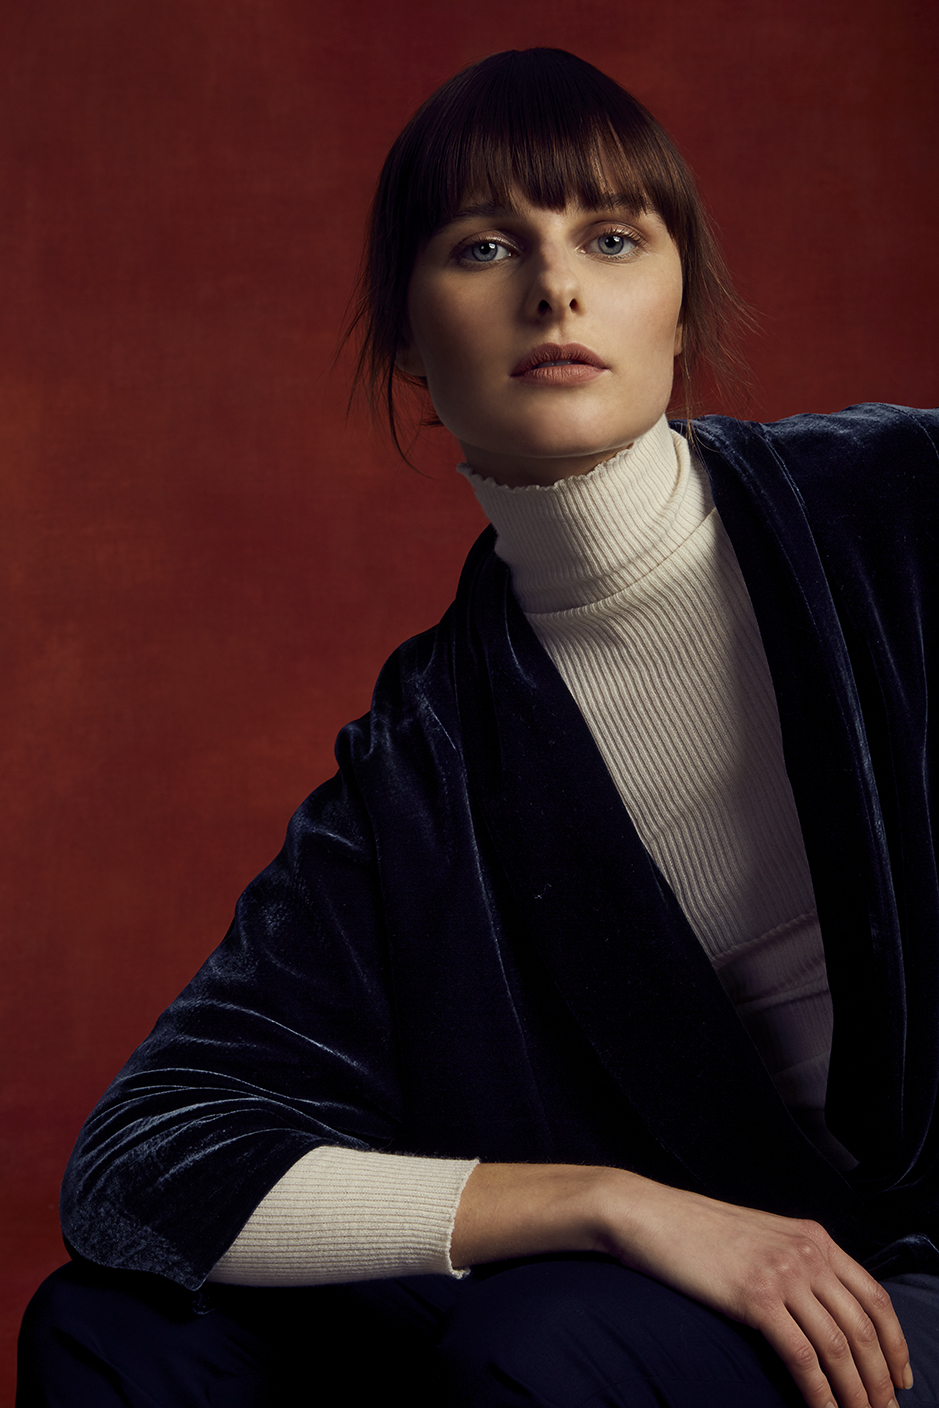 MATTEO SWEATSHIRT   VELVET, SILK CHARMEUSE LINING      URBANA TURTLENECK   STRETCH CASHMERE      PIPPA PANT   STRETCH TASMANIAN SUPER 150'S WOOL      Contact for inquiry